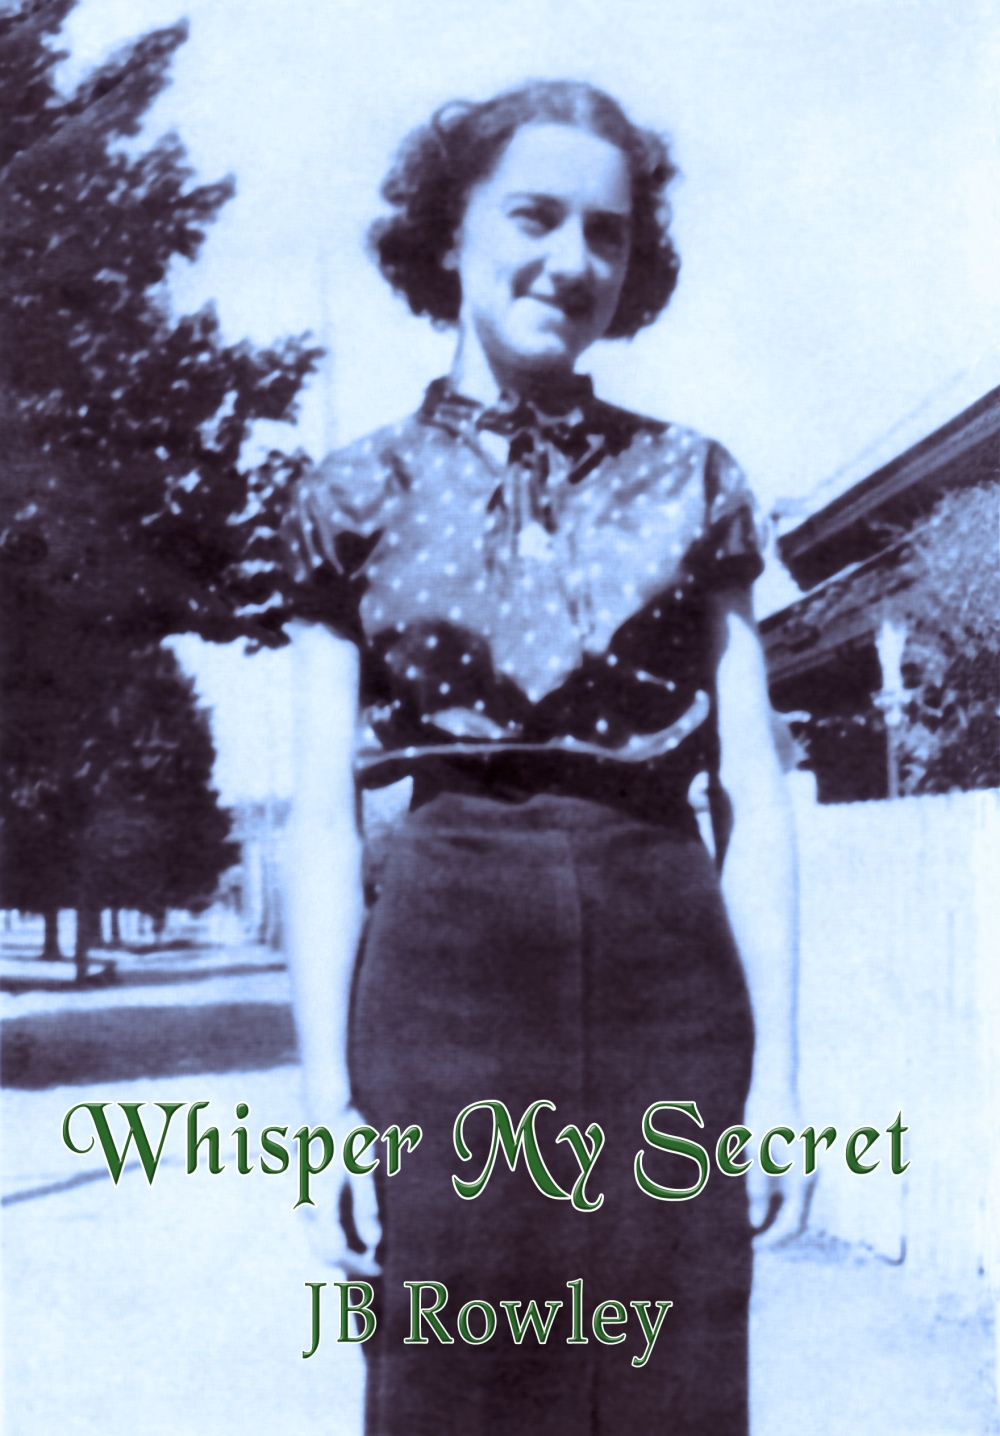 Whisper My Secret